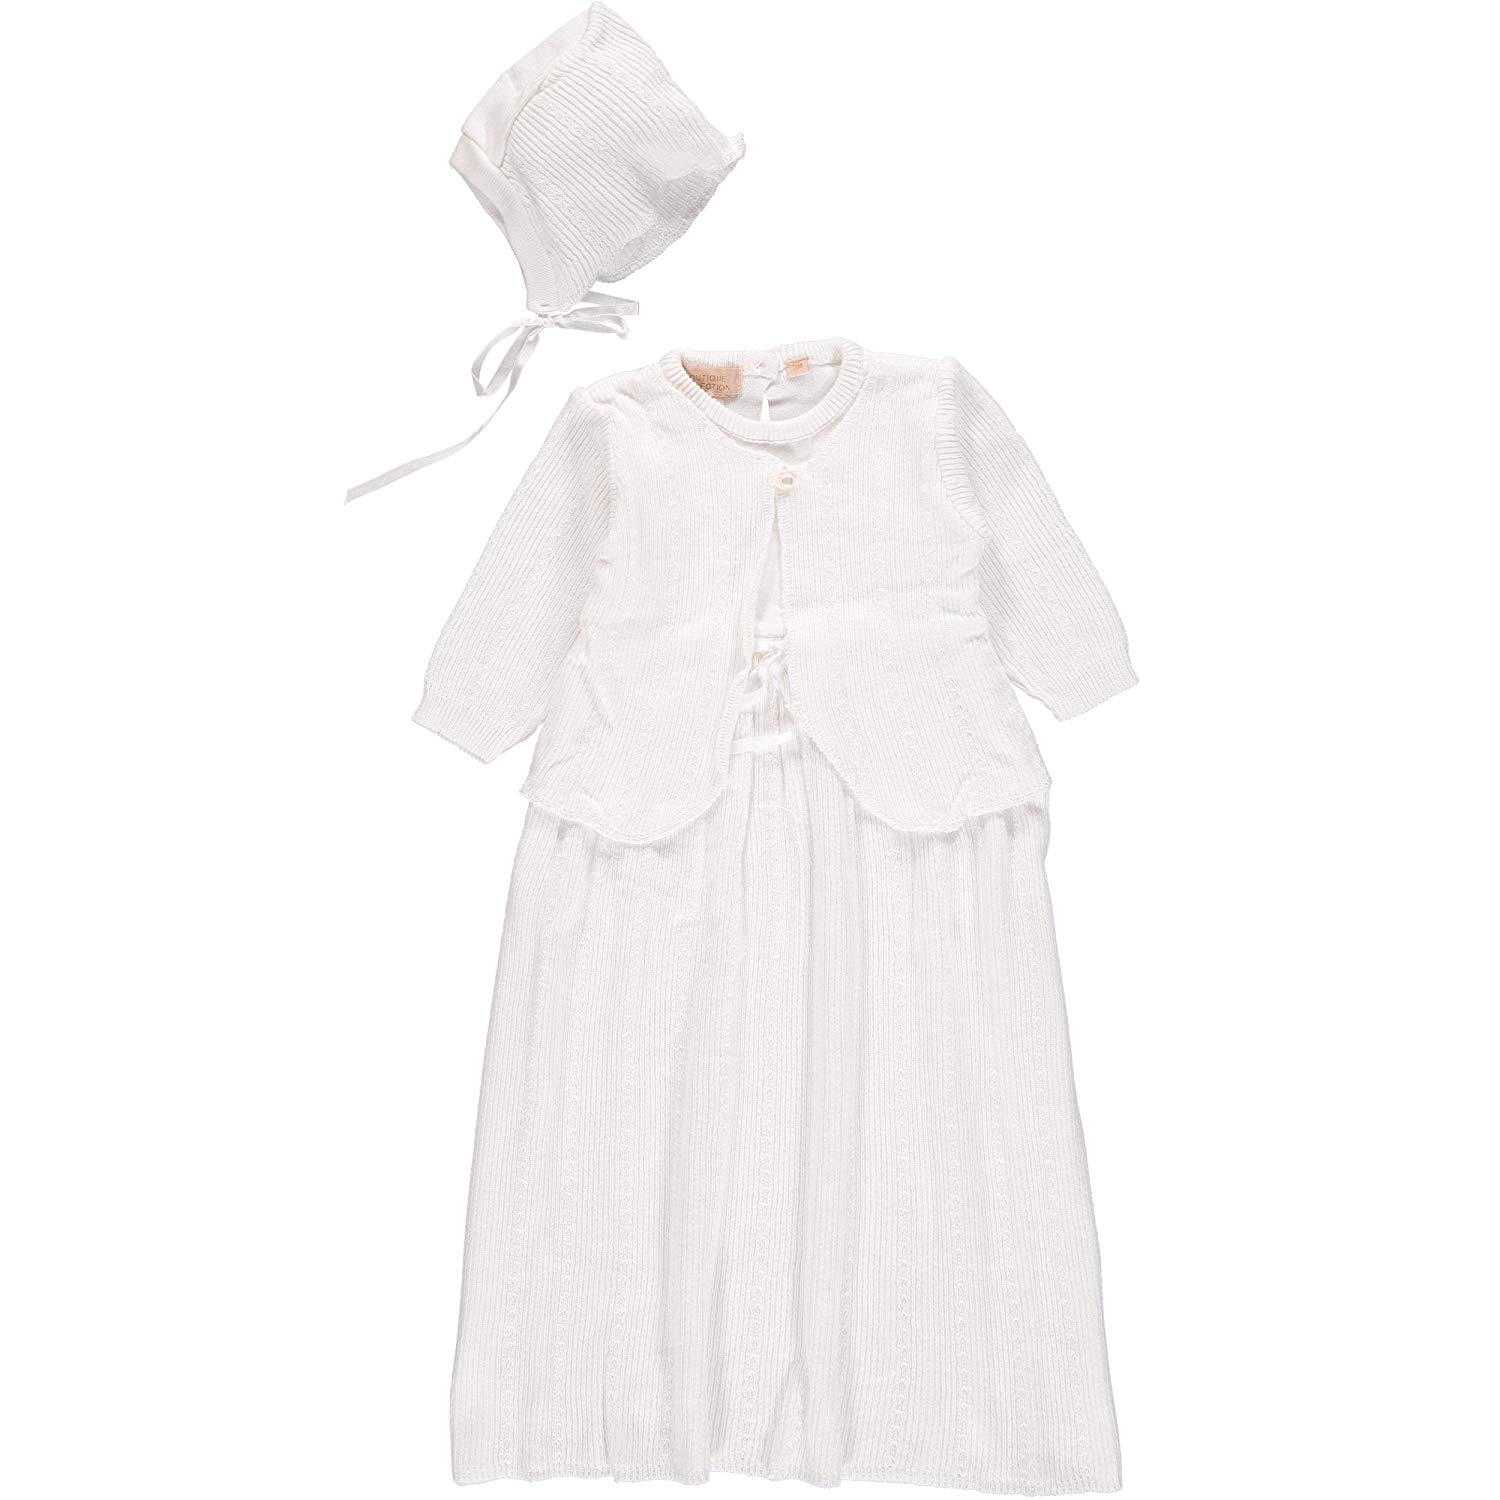 Little Things Mean A Lot Baby Girls White Silk Lattice Bodice Short Sleeve Hat Christening Gown 0-12M